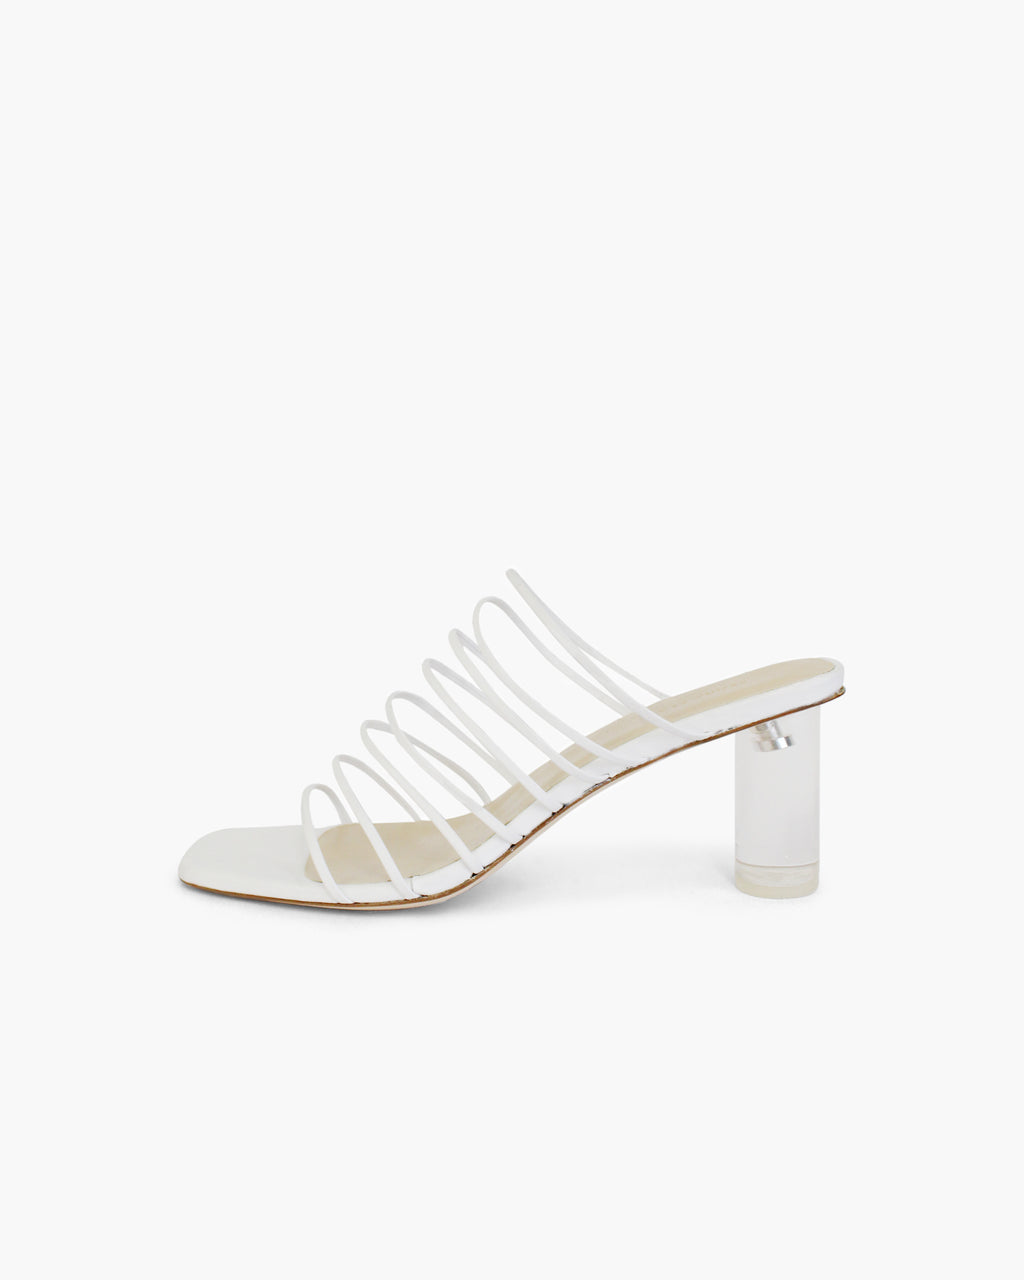 Zoe Sandals Leather White - SPECIAL PRICE